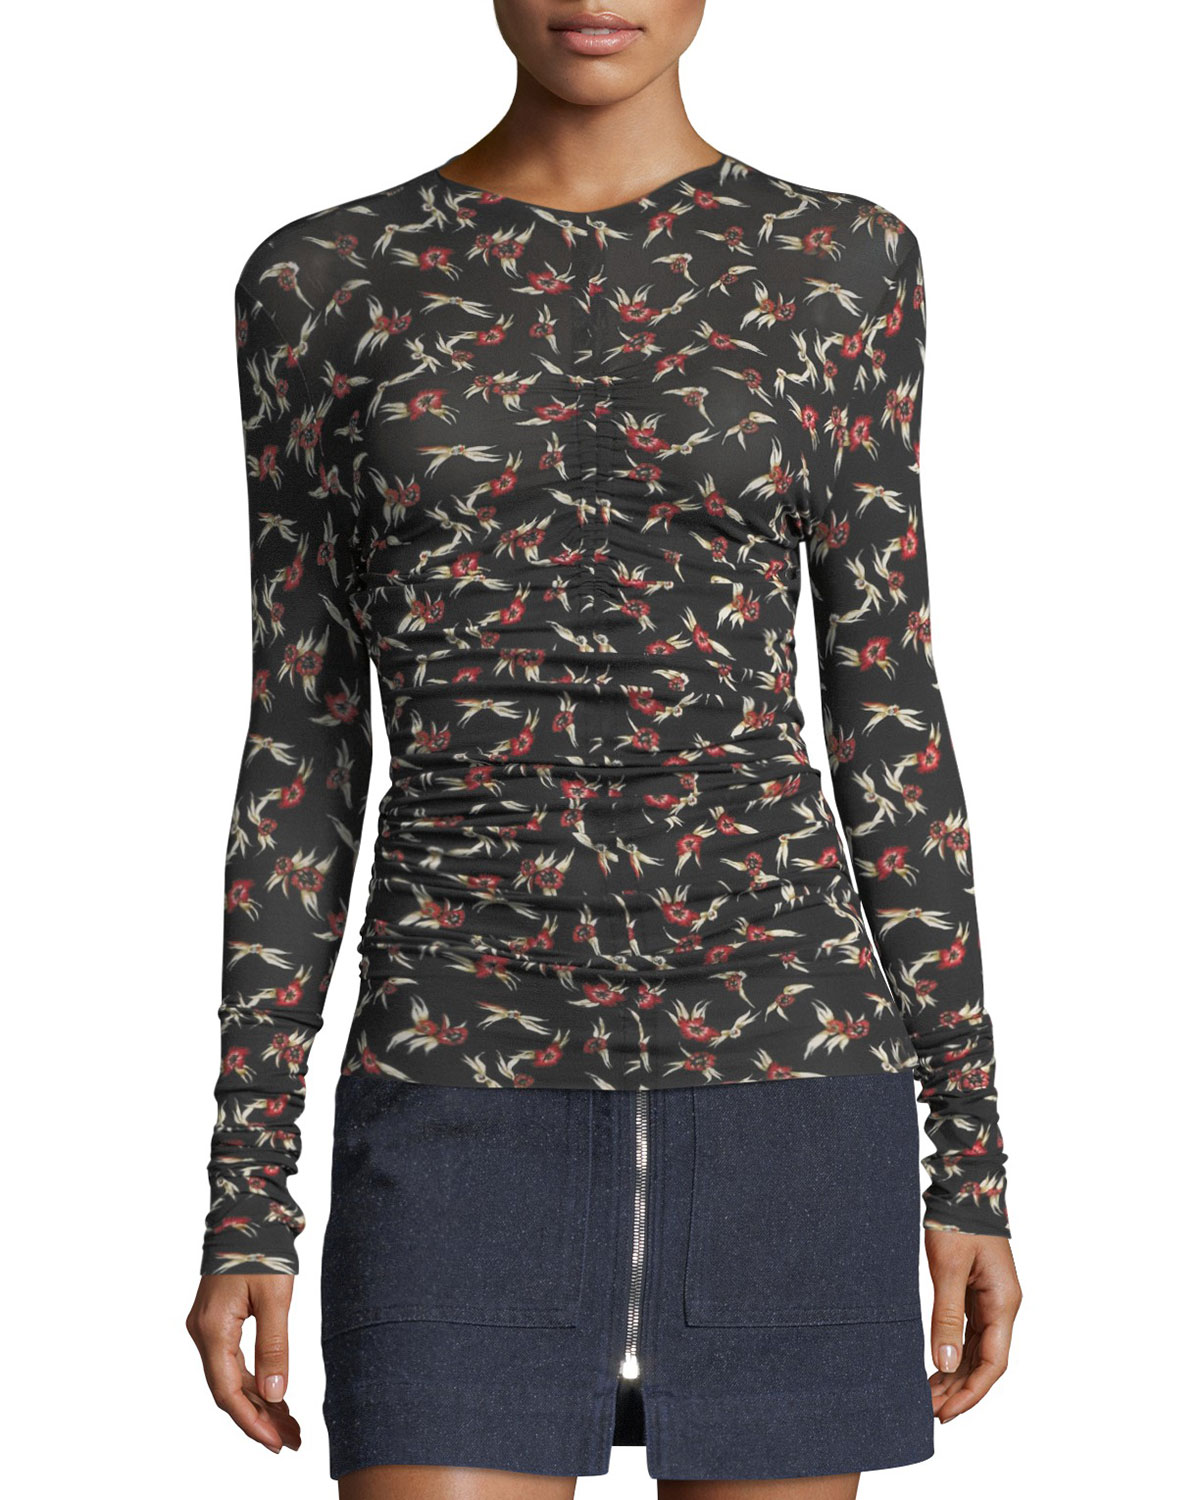 Miston Ruched Floral Top